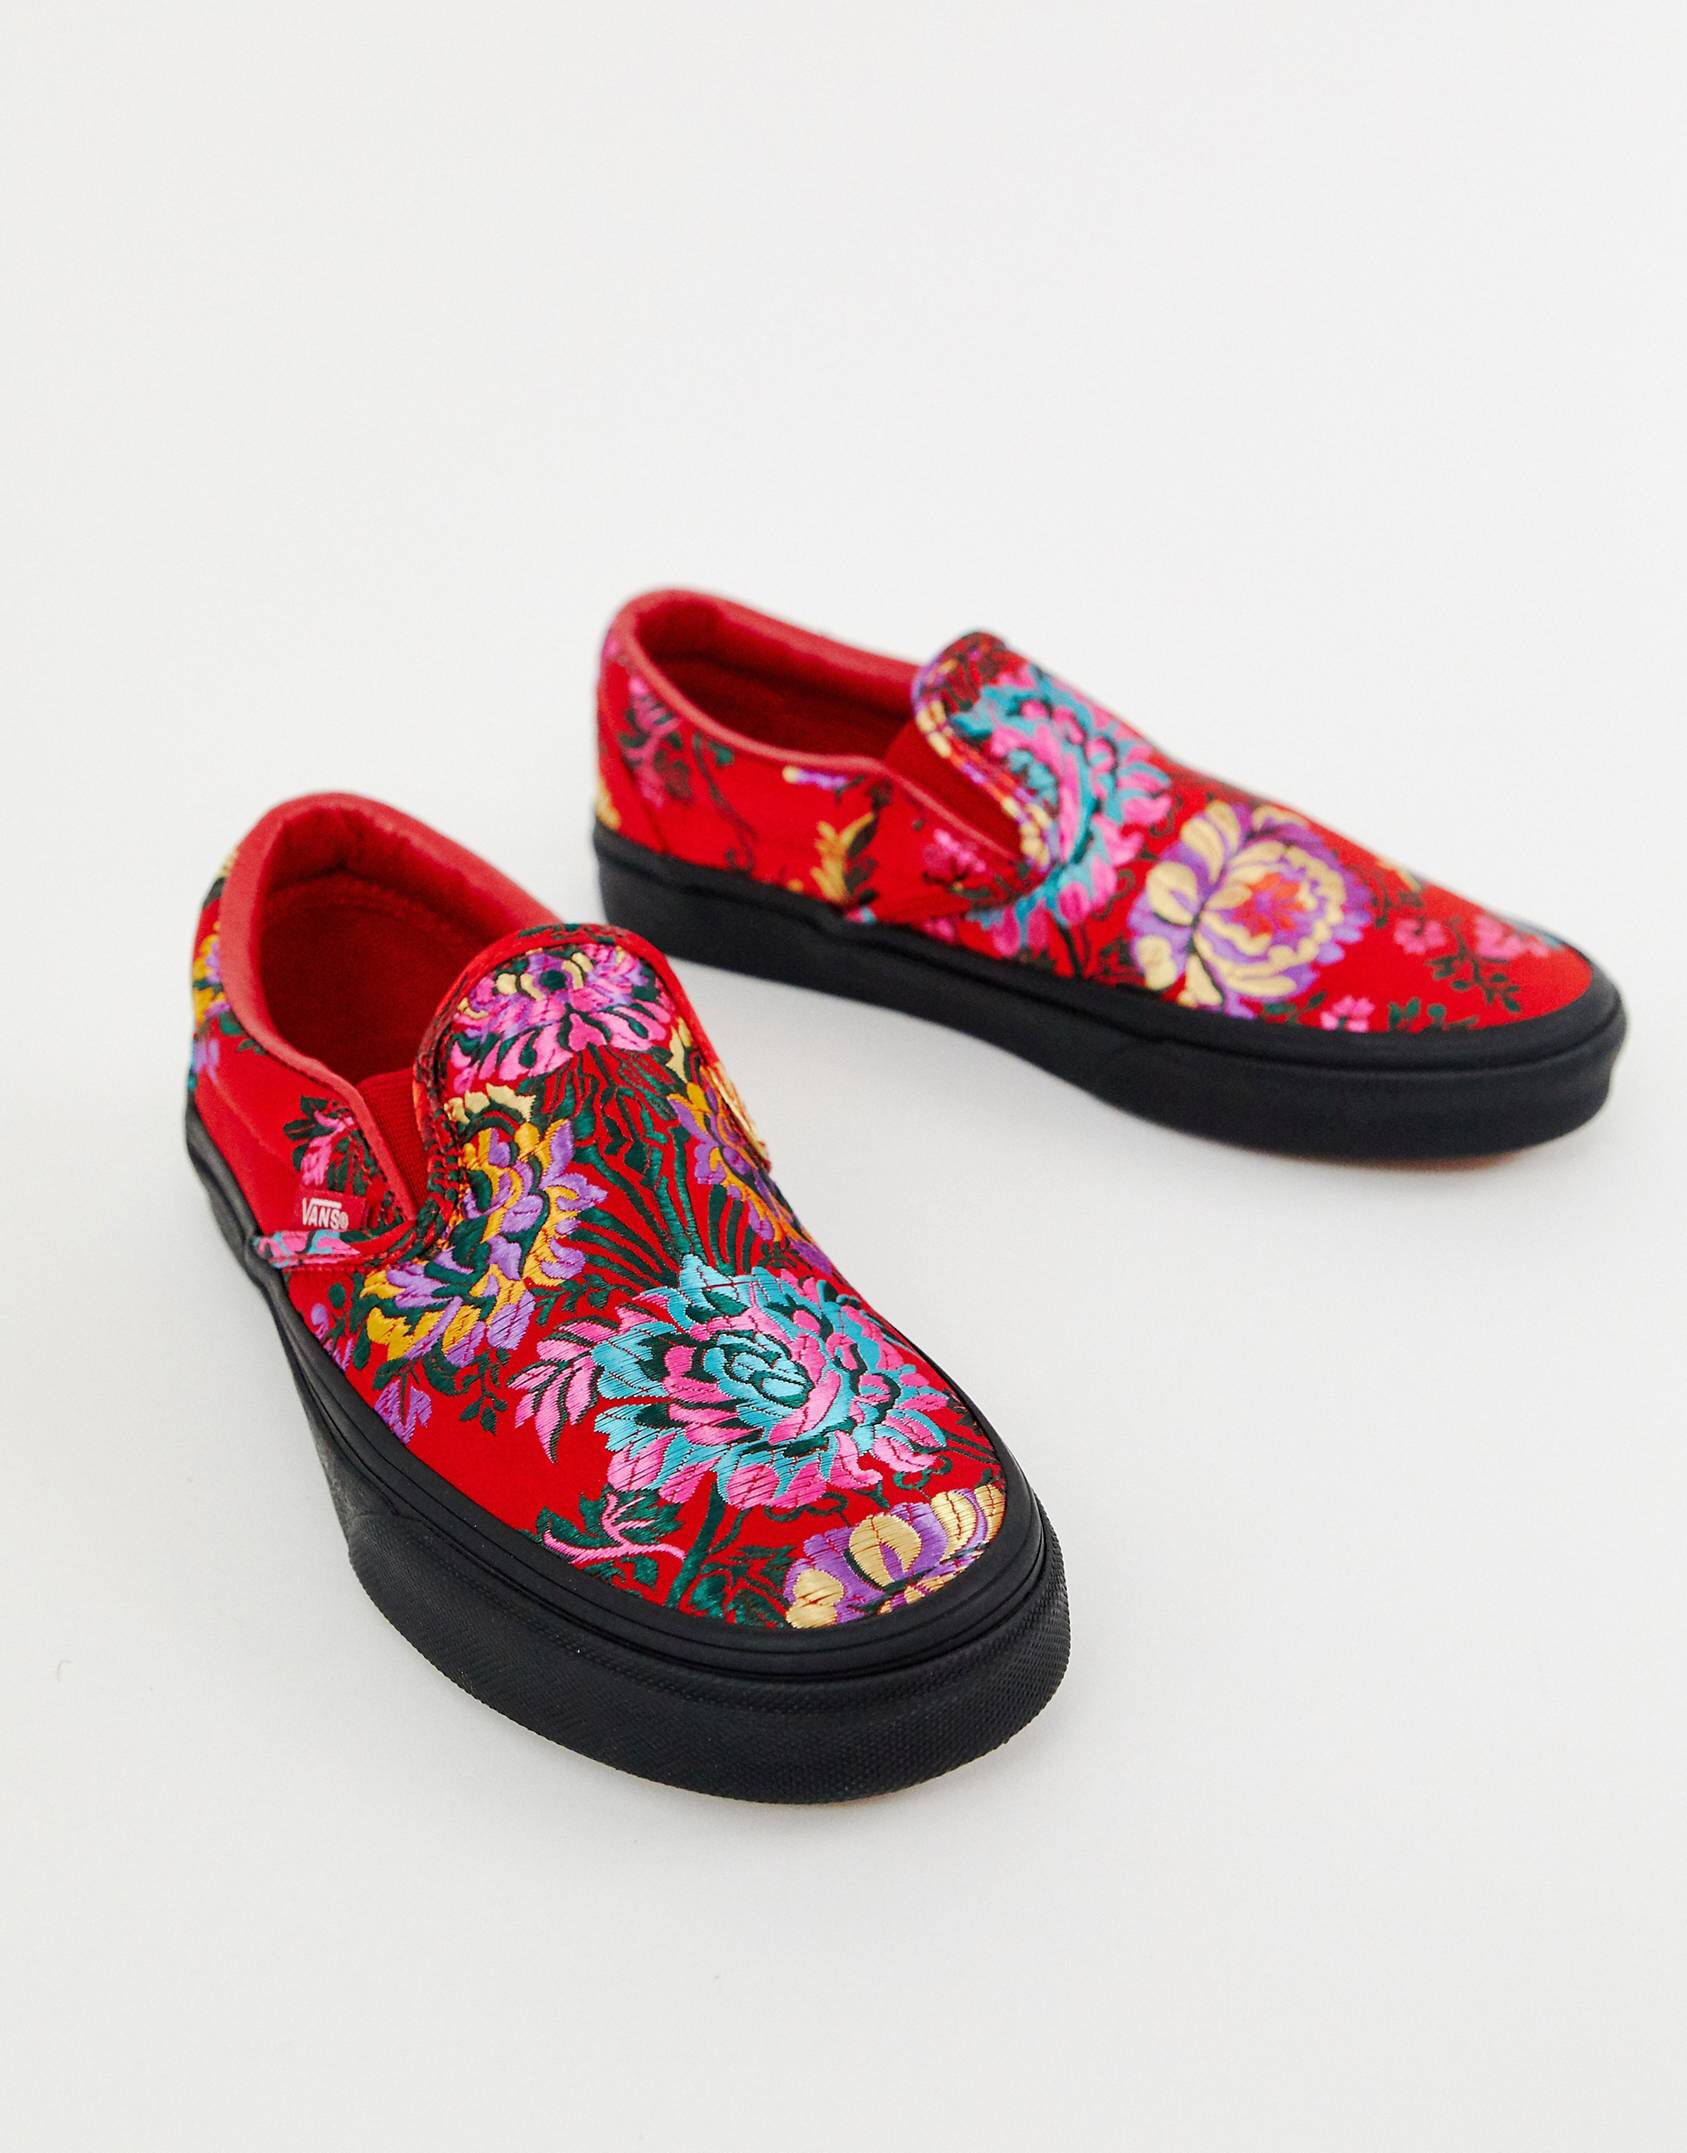 72562619aced Vans Classic Slip-On red floral satin sneakers in 2019